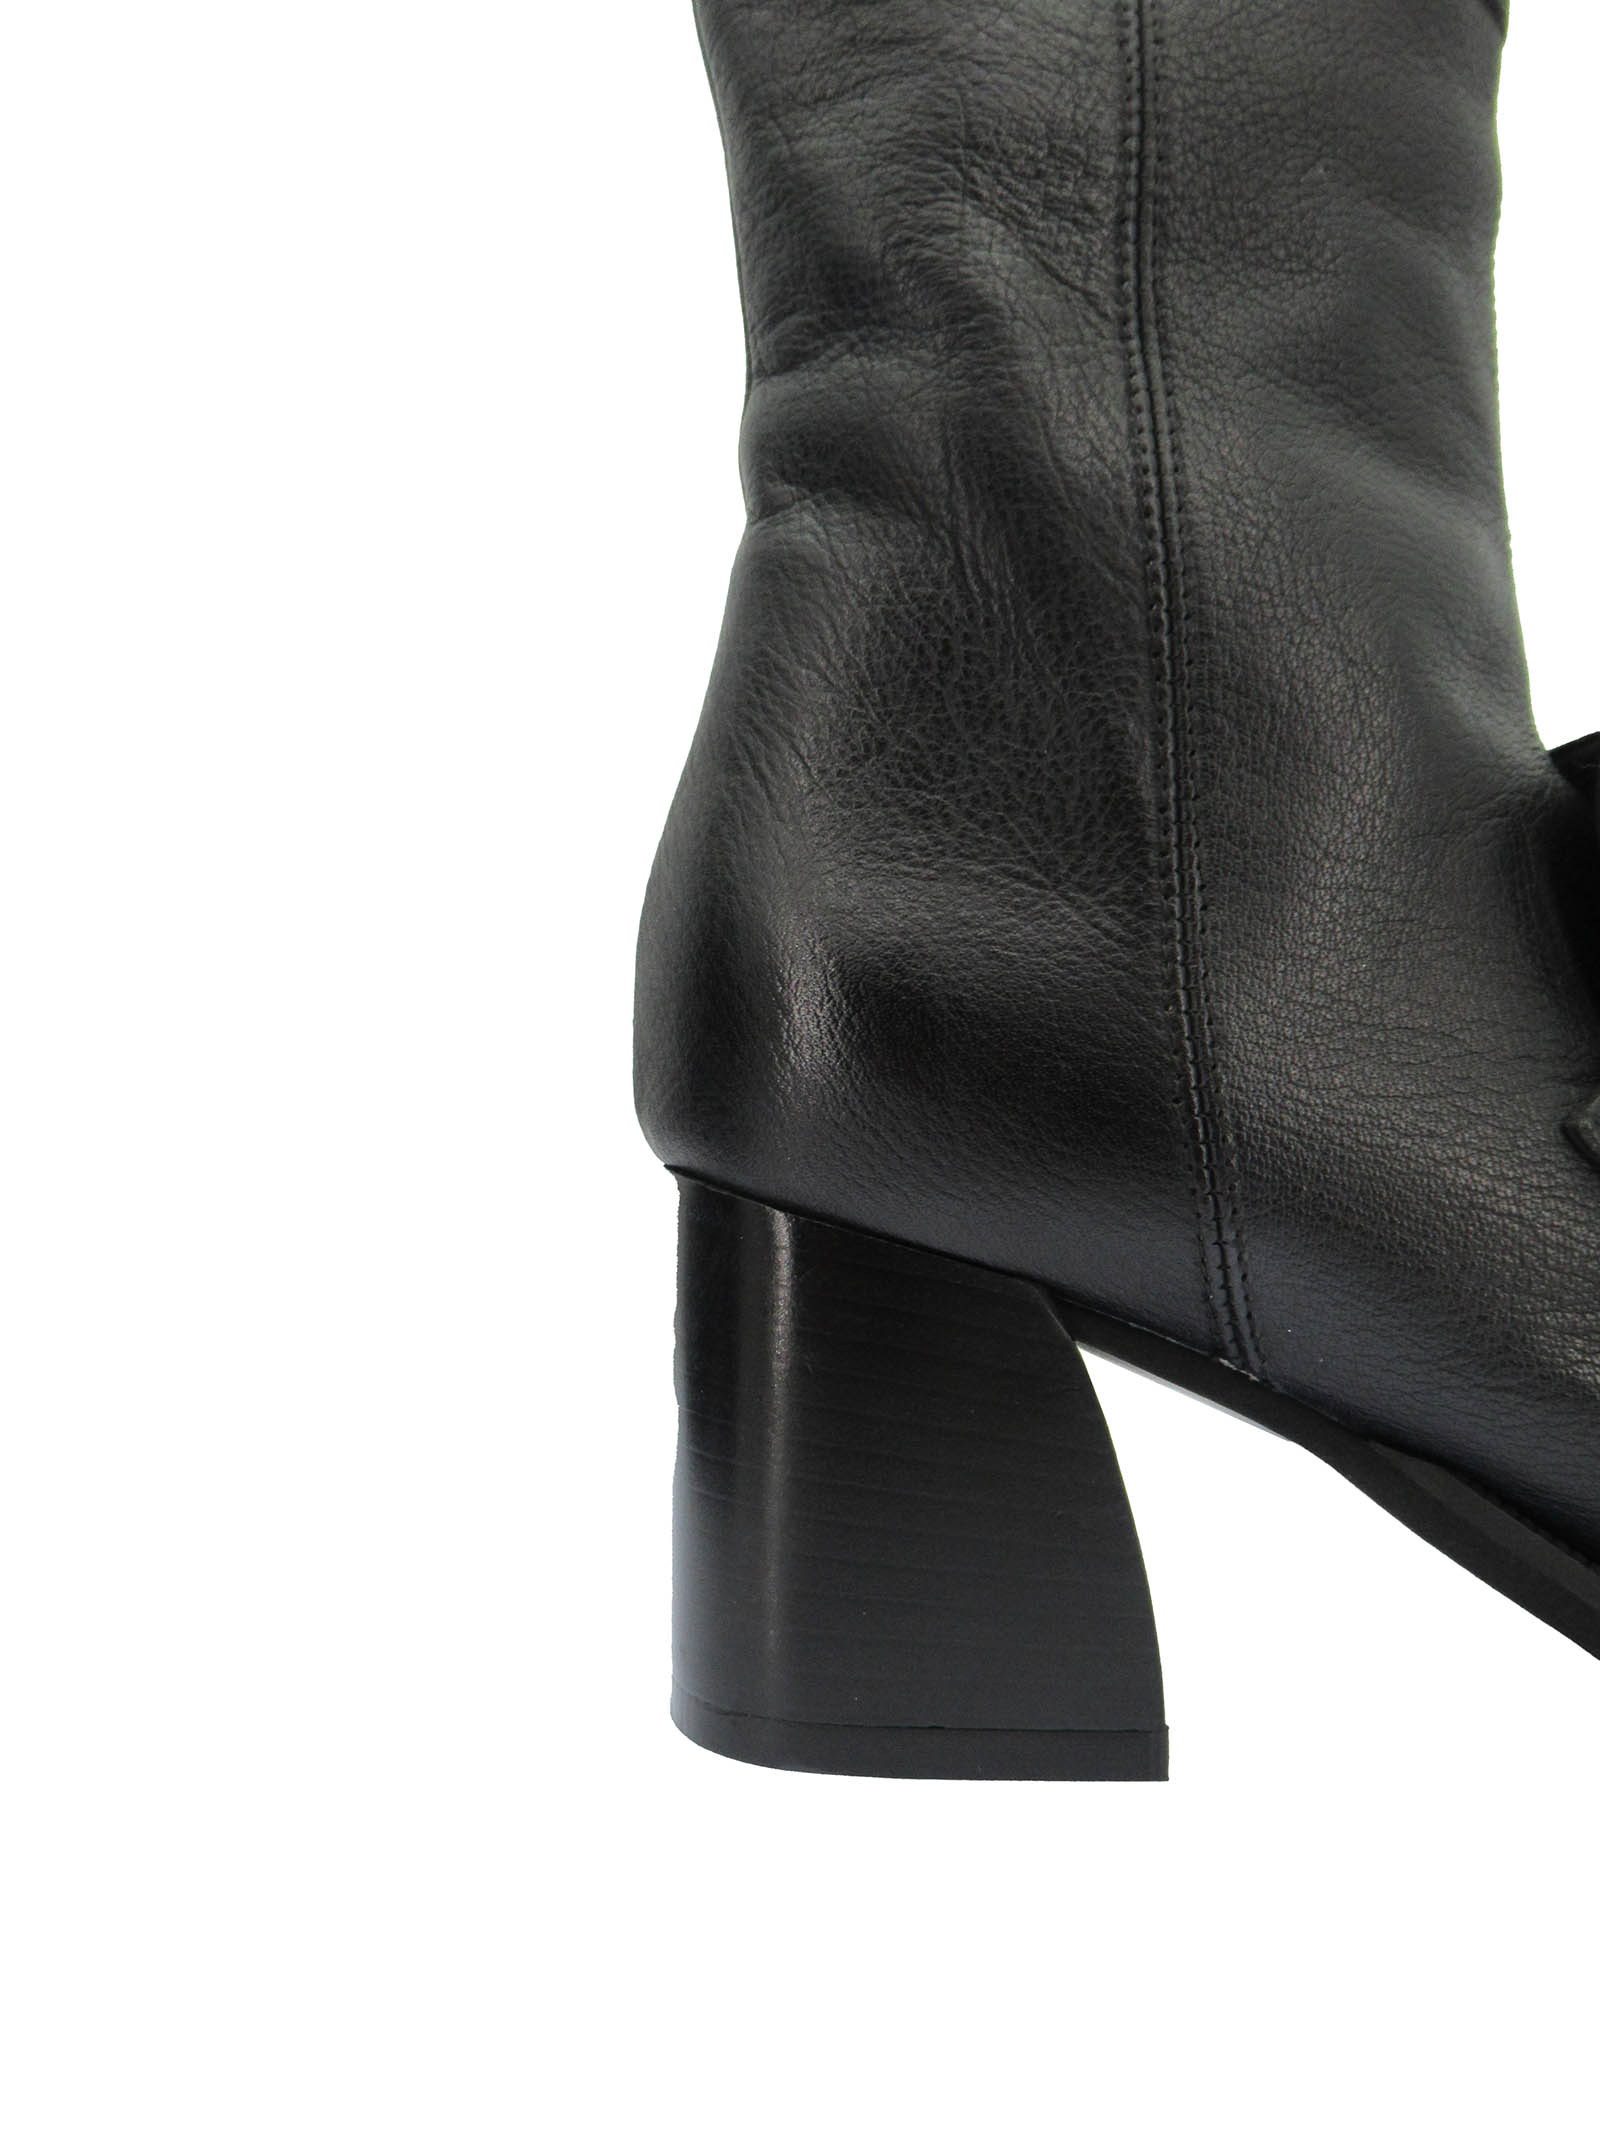 Women's Shoes Ankle Boots in Black Leather with Strap and Accessory and Leather Heel Zoe   Ankle Boots   LEEDS03001